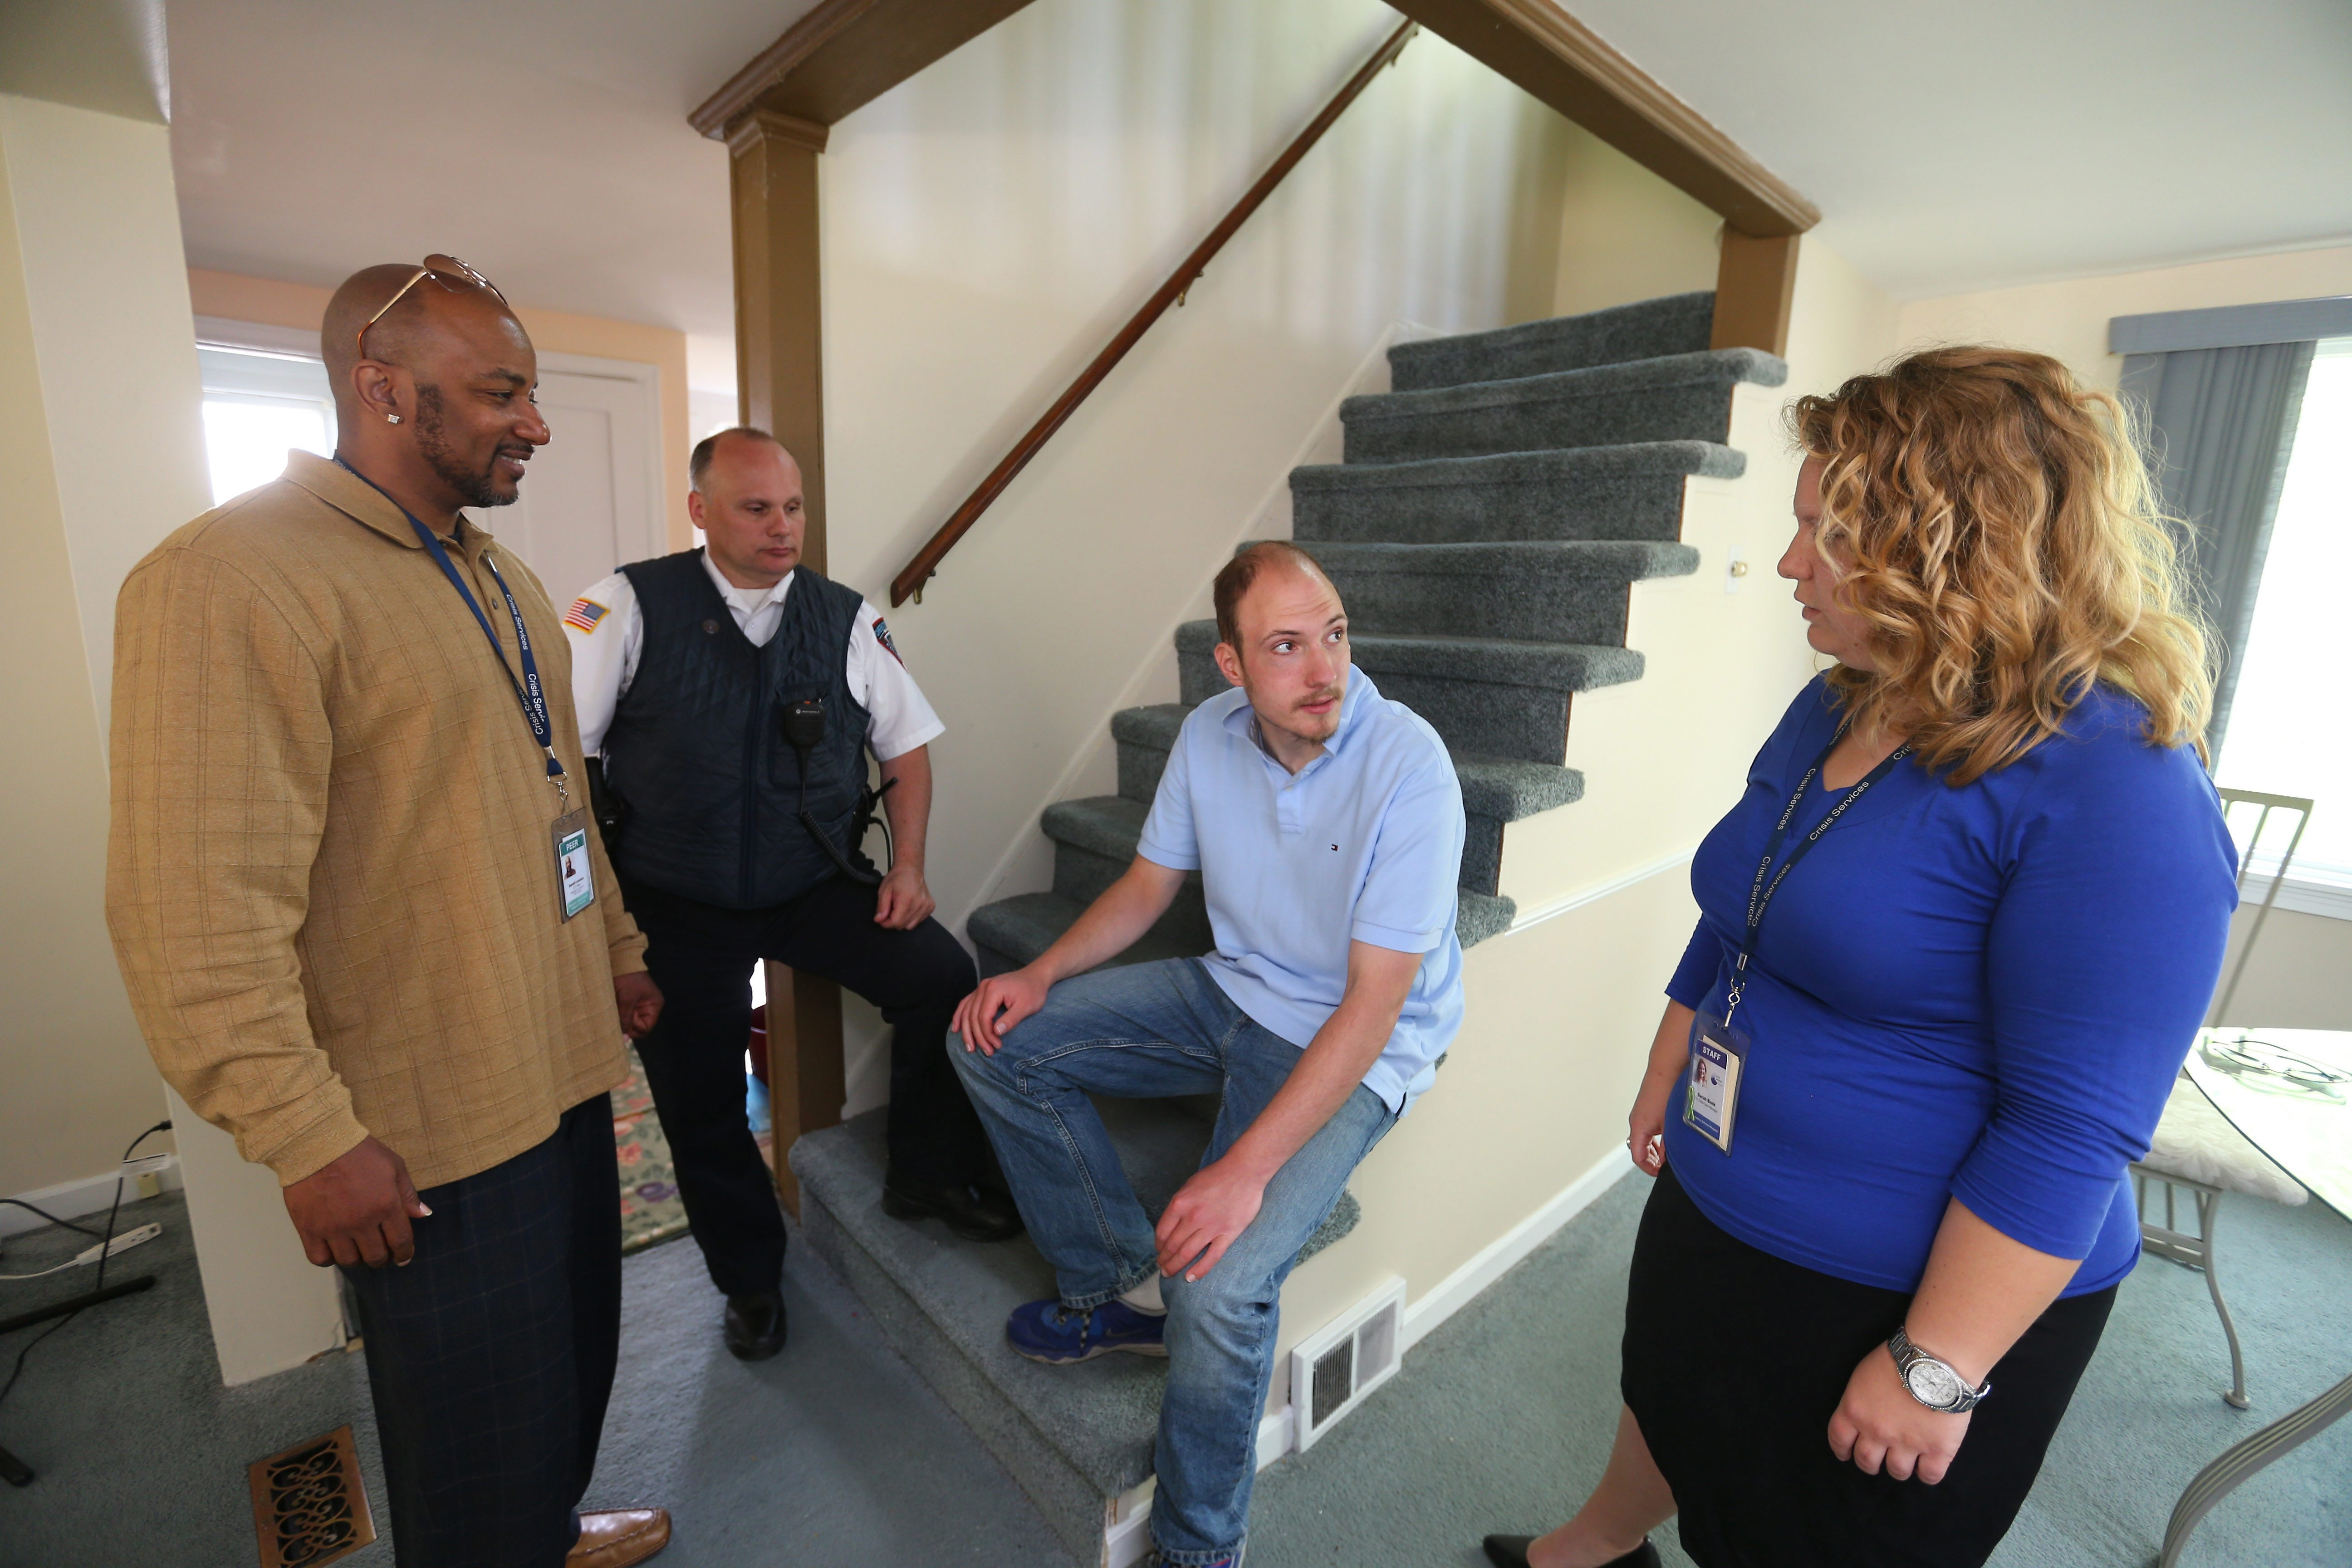 Erie County Crisis Services counselors Gerard Lawson, left, and Sarah Bonk talk with patient Shawn Offhaus in a visit to his home in Cheektowaga with Police Officer Anthony Filipski. The town's department is among those using crisis intervention team model.